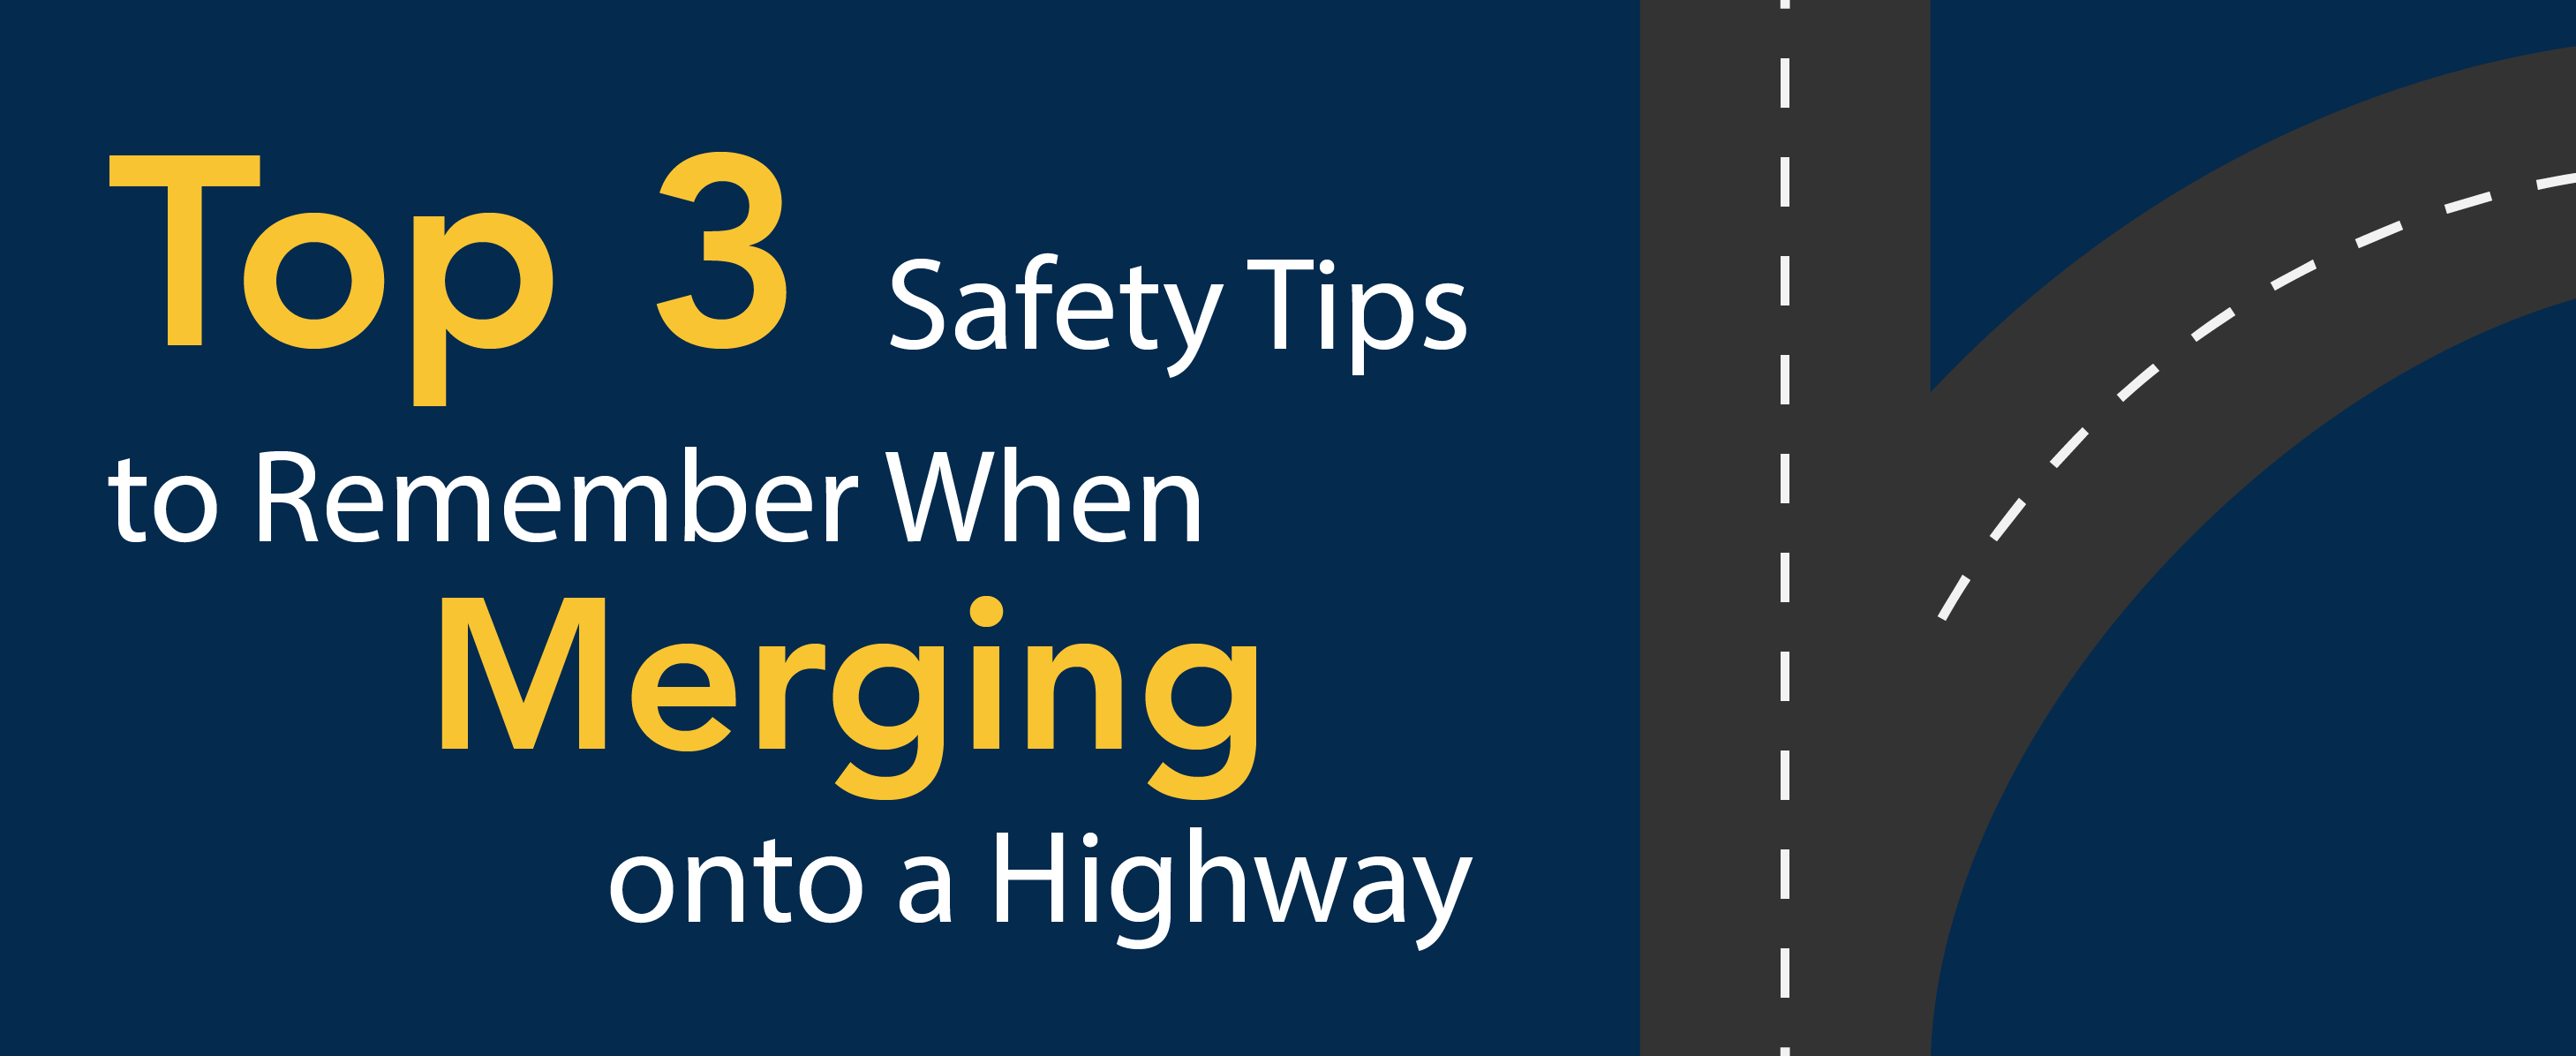 Top 3 safety tips to remember when merging onto a highway